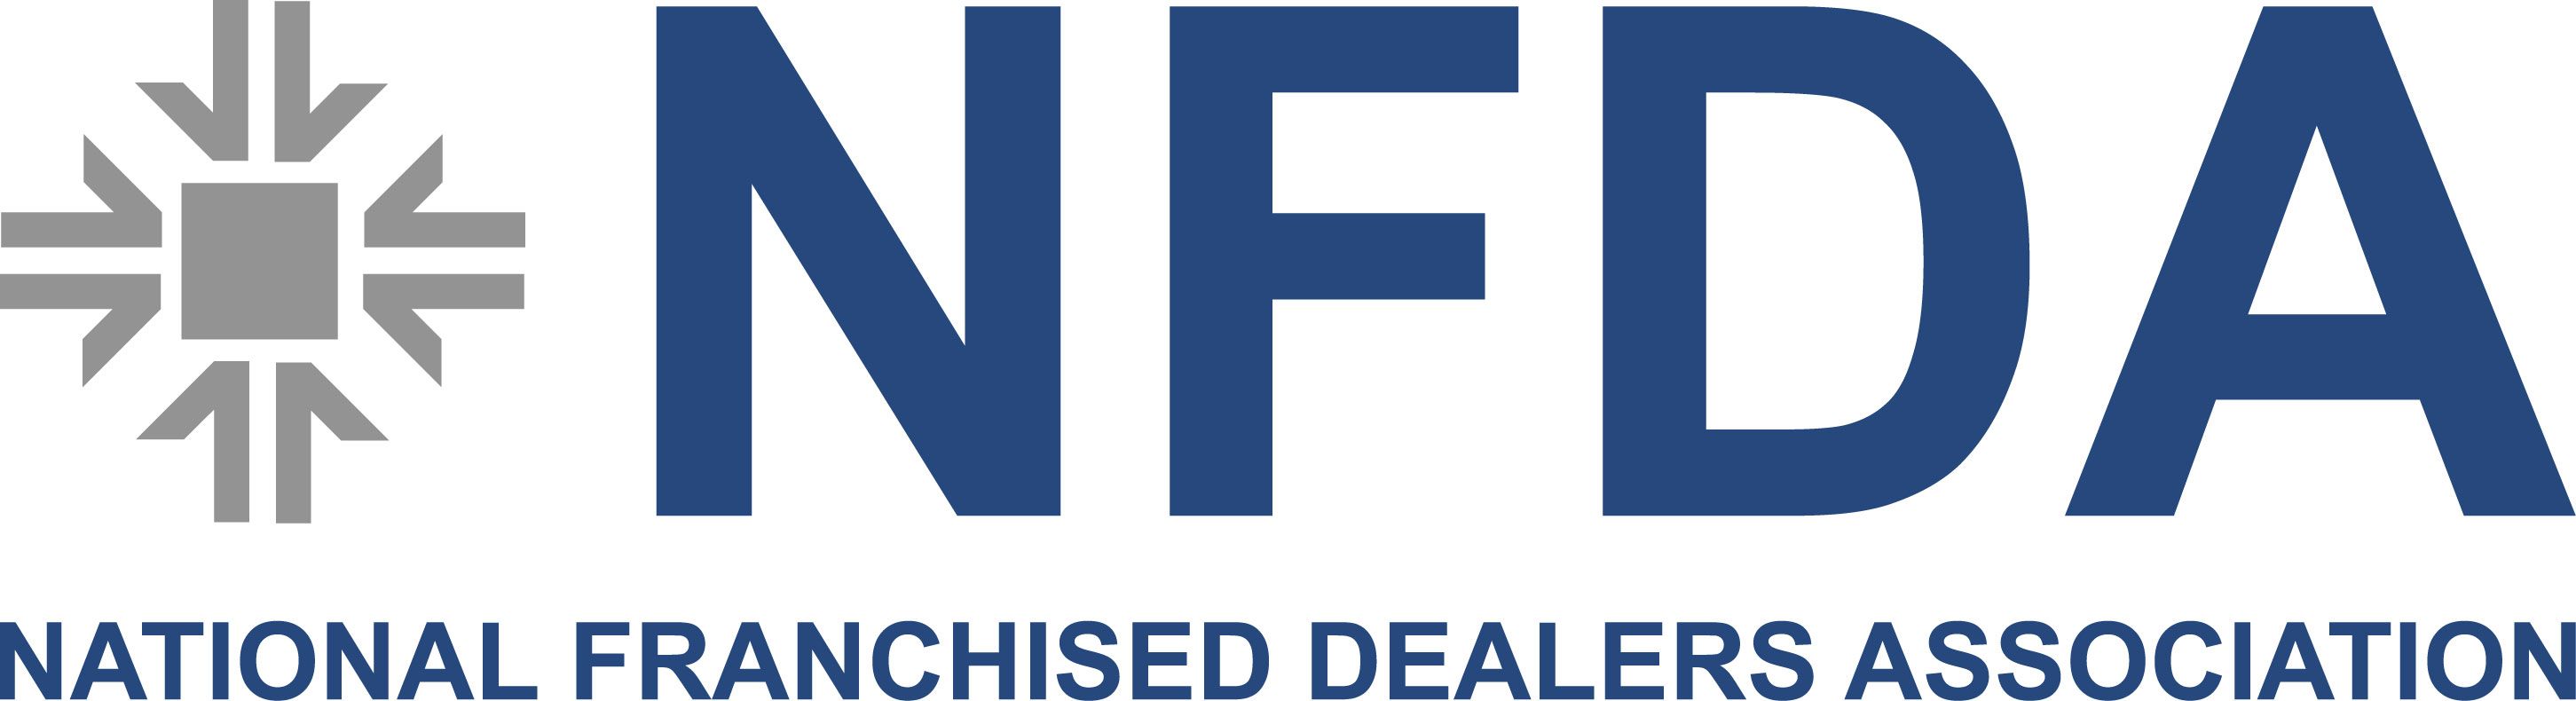 NFDA, colour logo